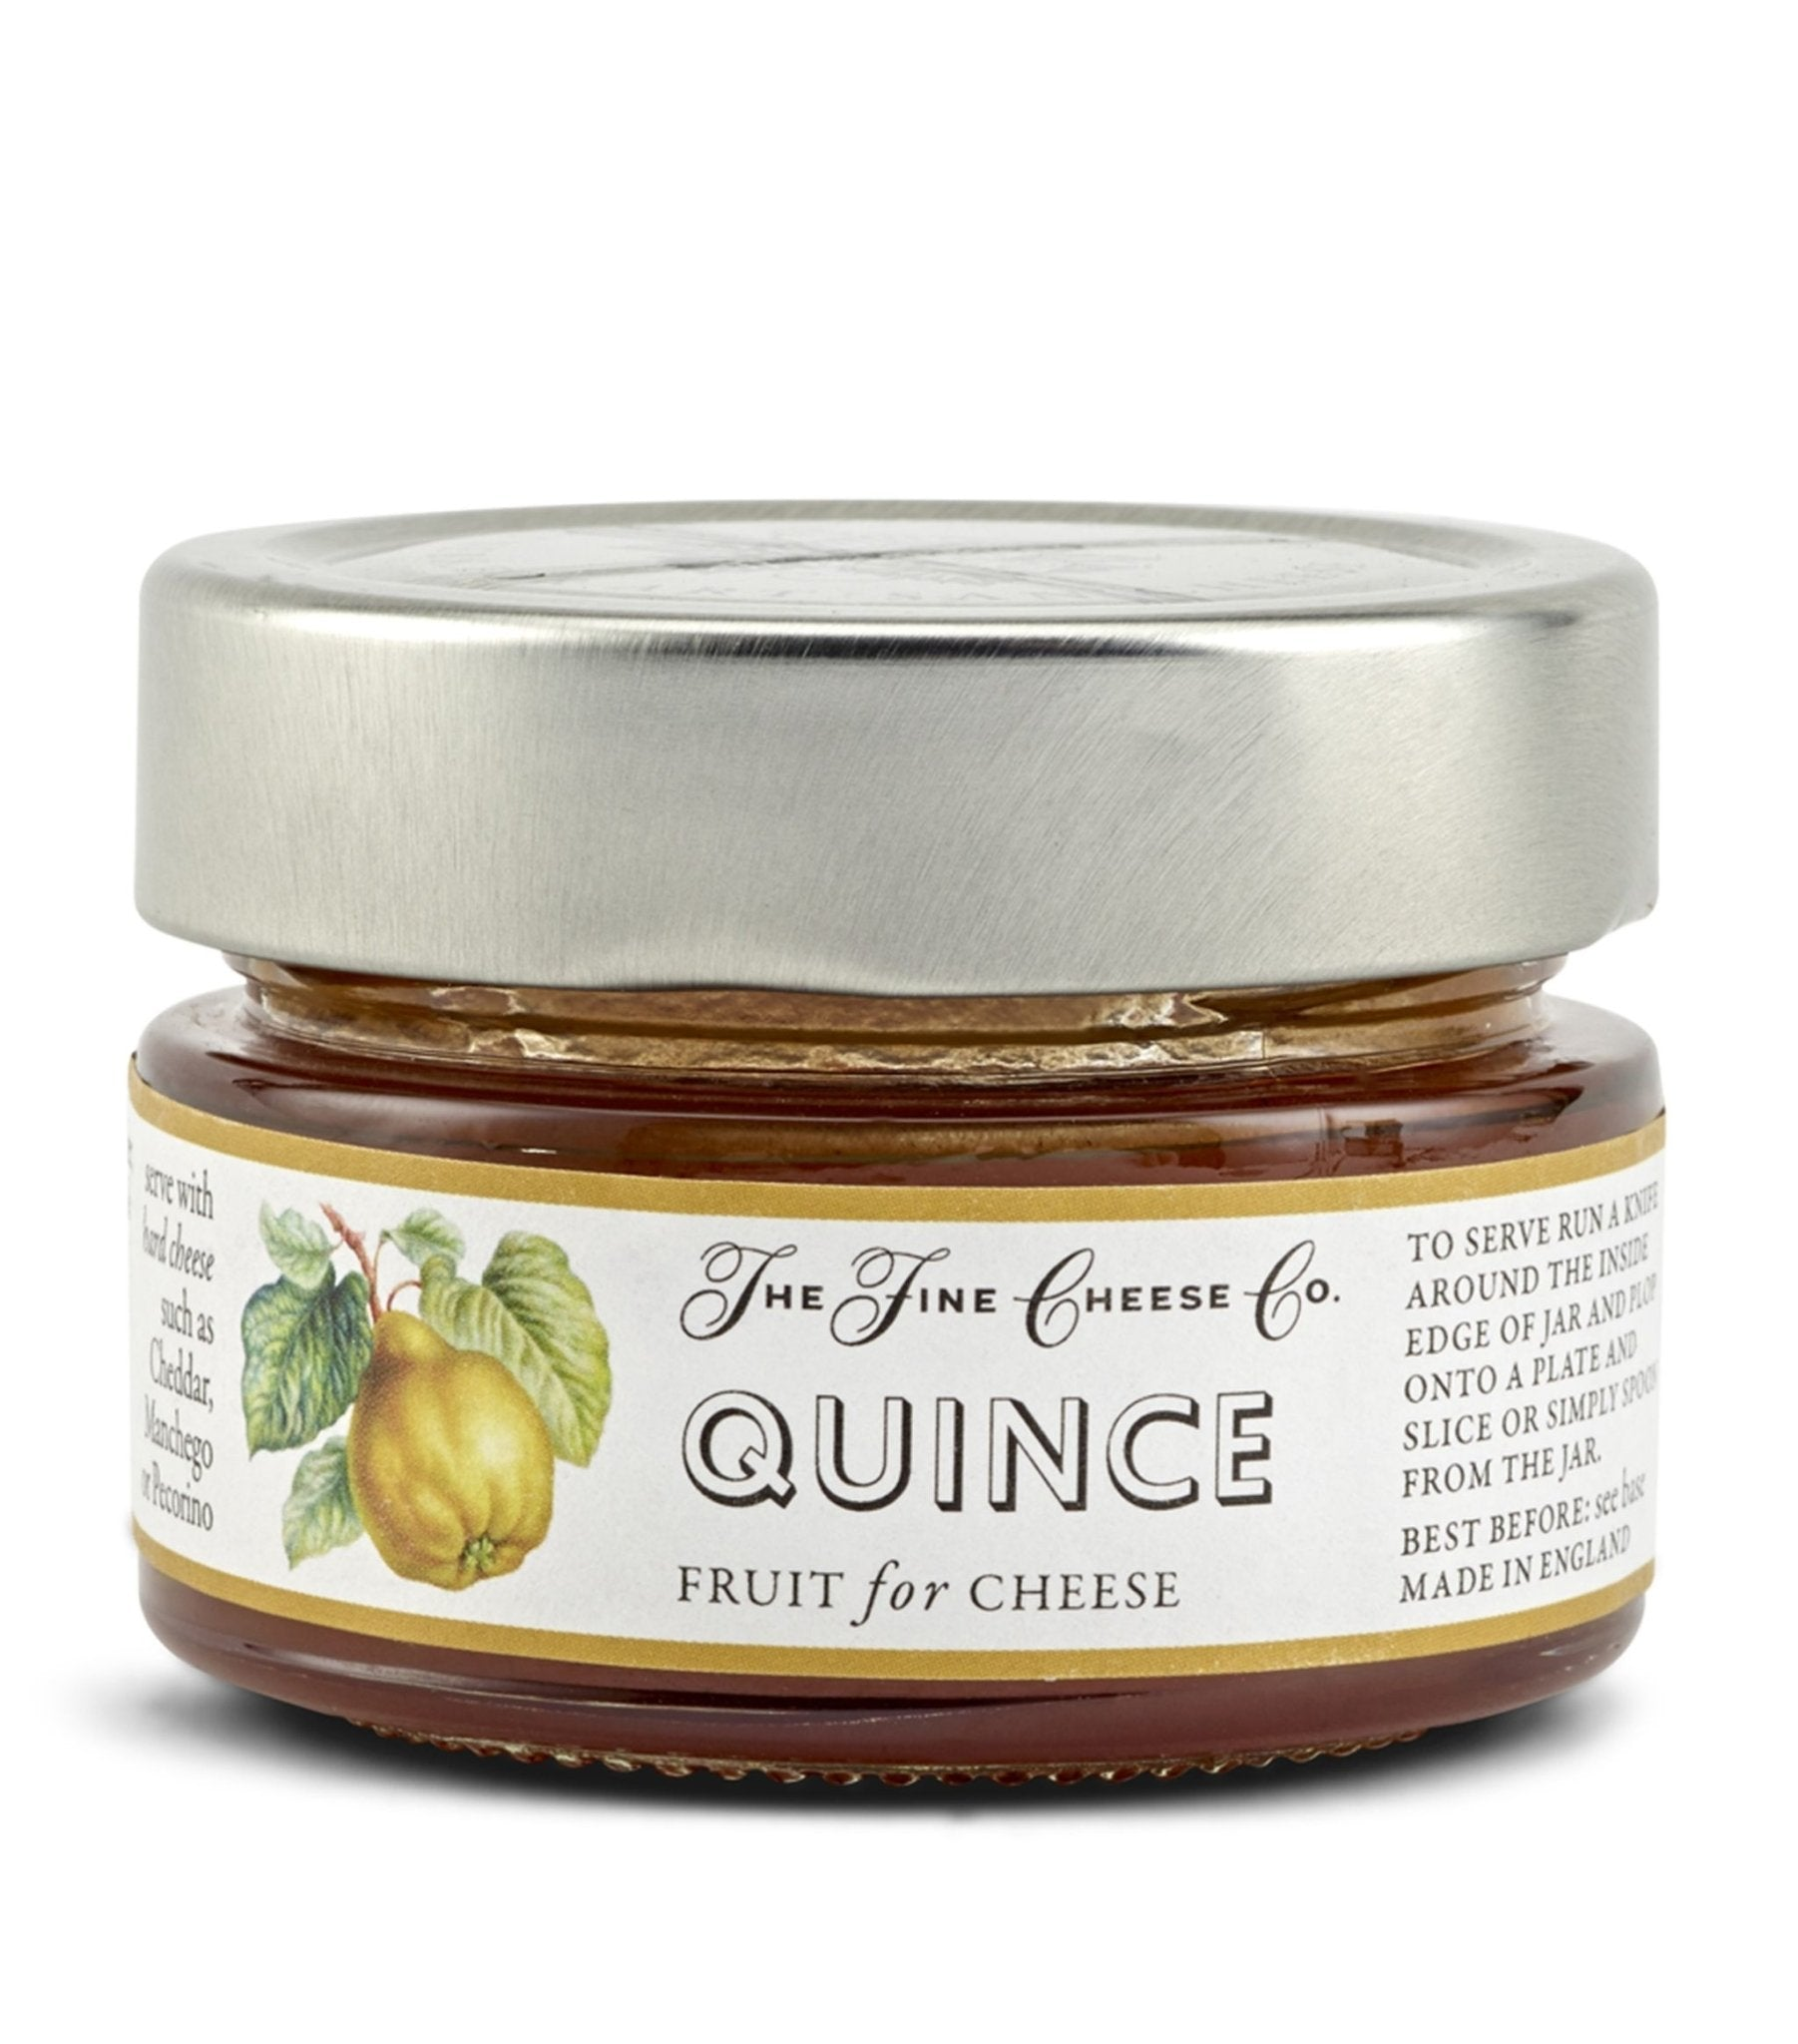 Quince Jelly for Cheese - Vindinista